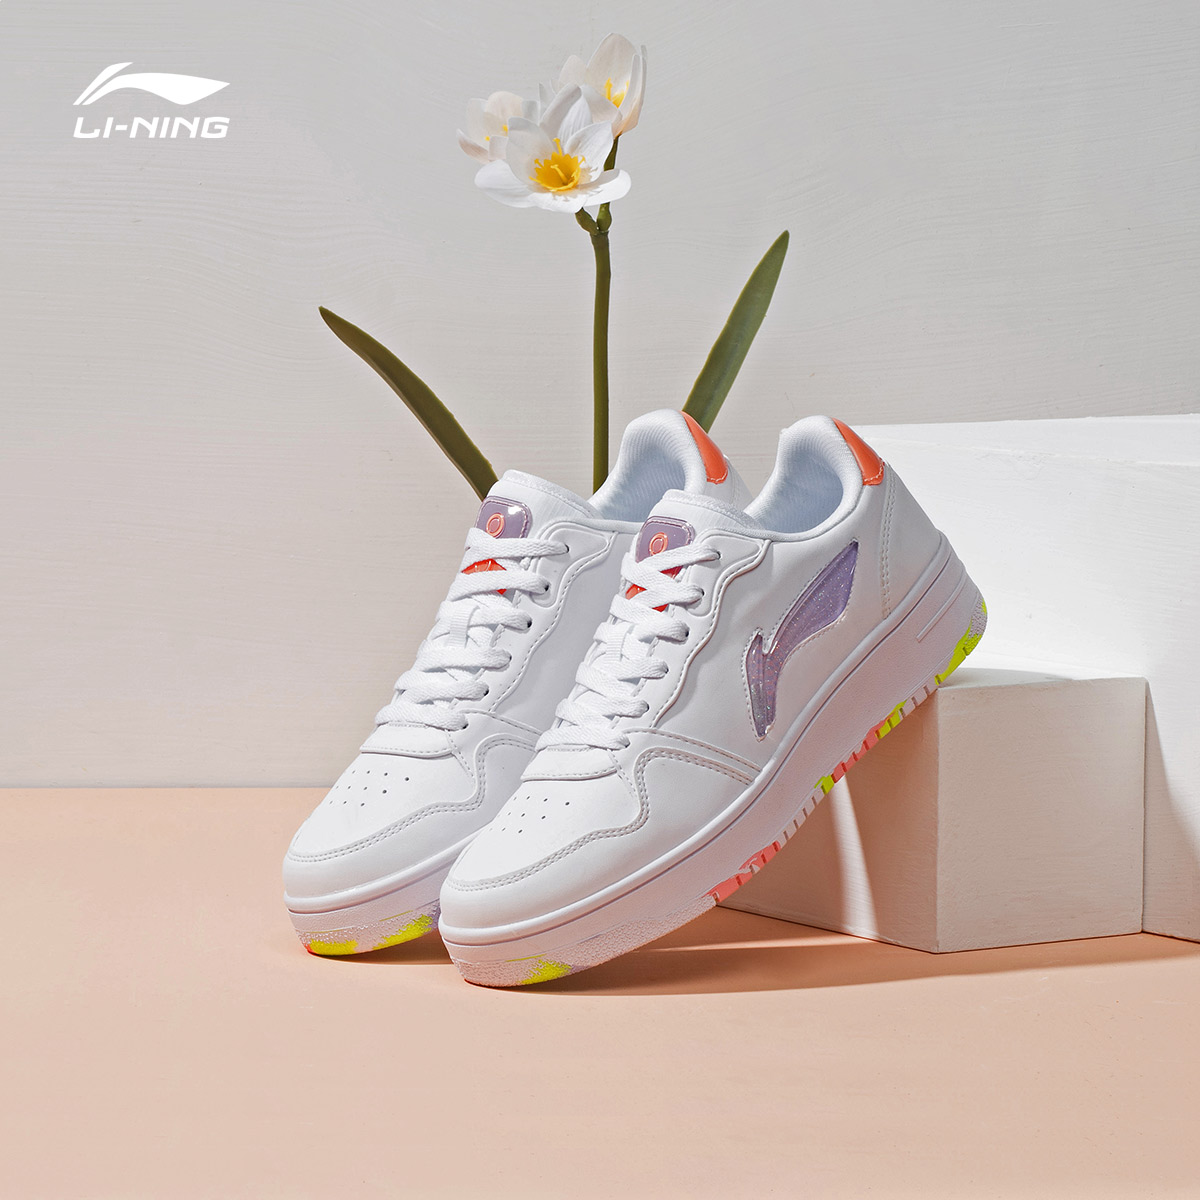 Li Ning casual shoes women's shoes casual shoes classic fashion white shoes low-top sneakers Li Ning flagship official website